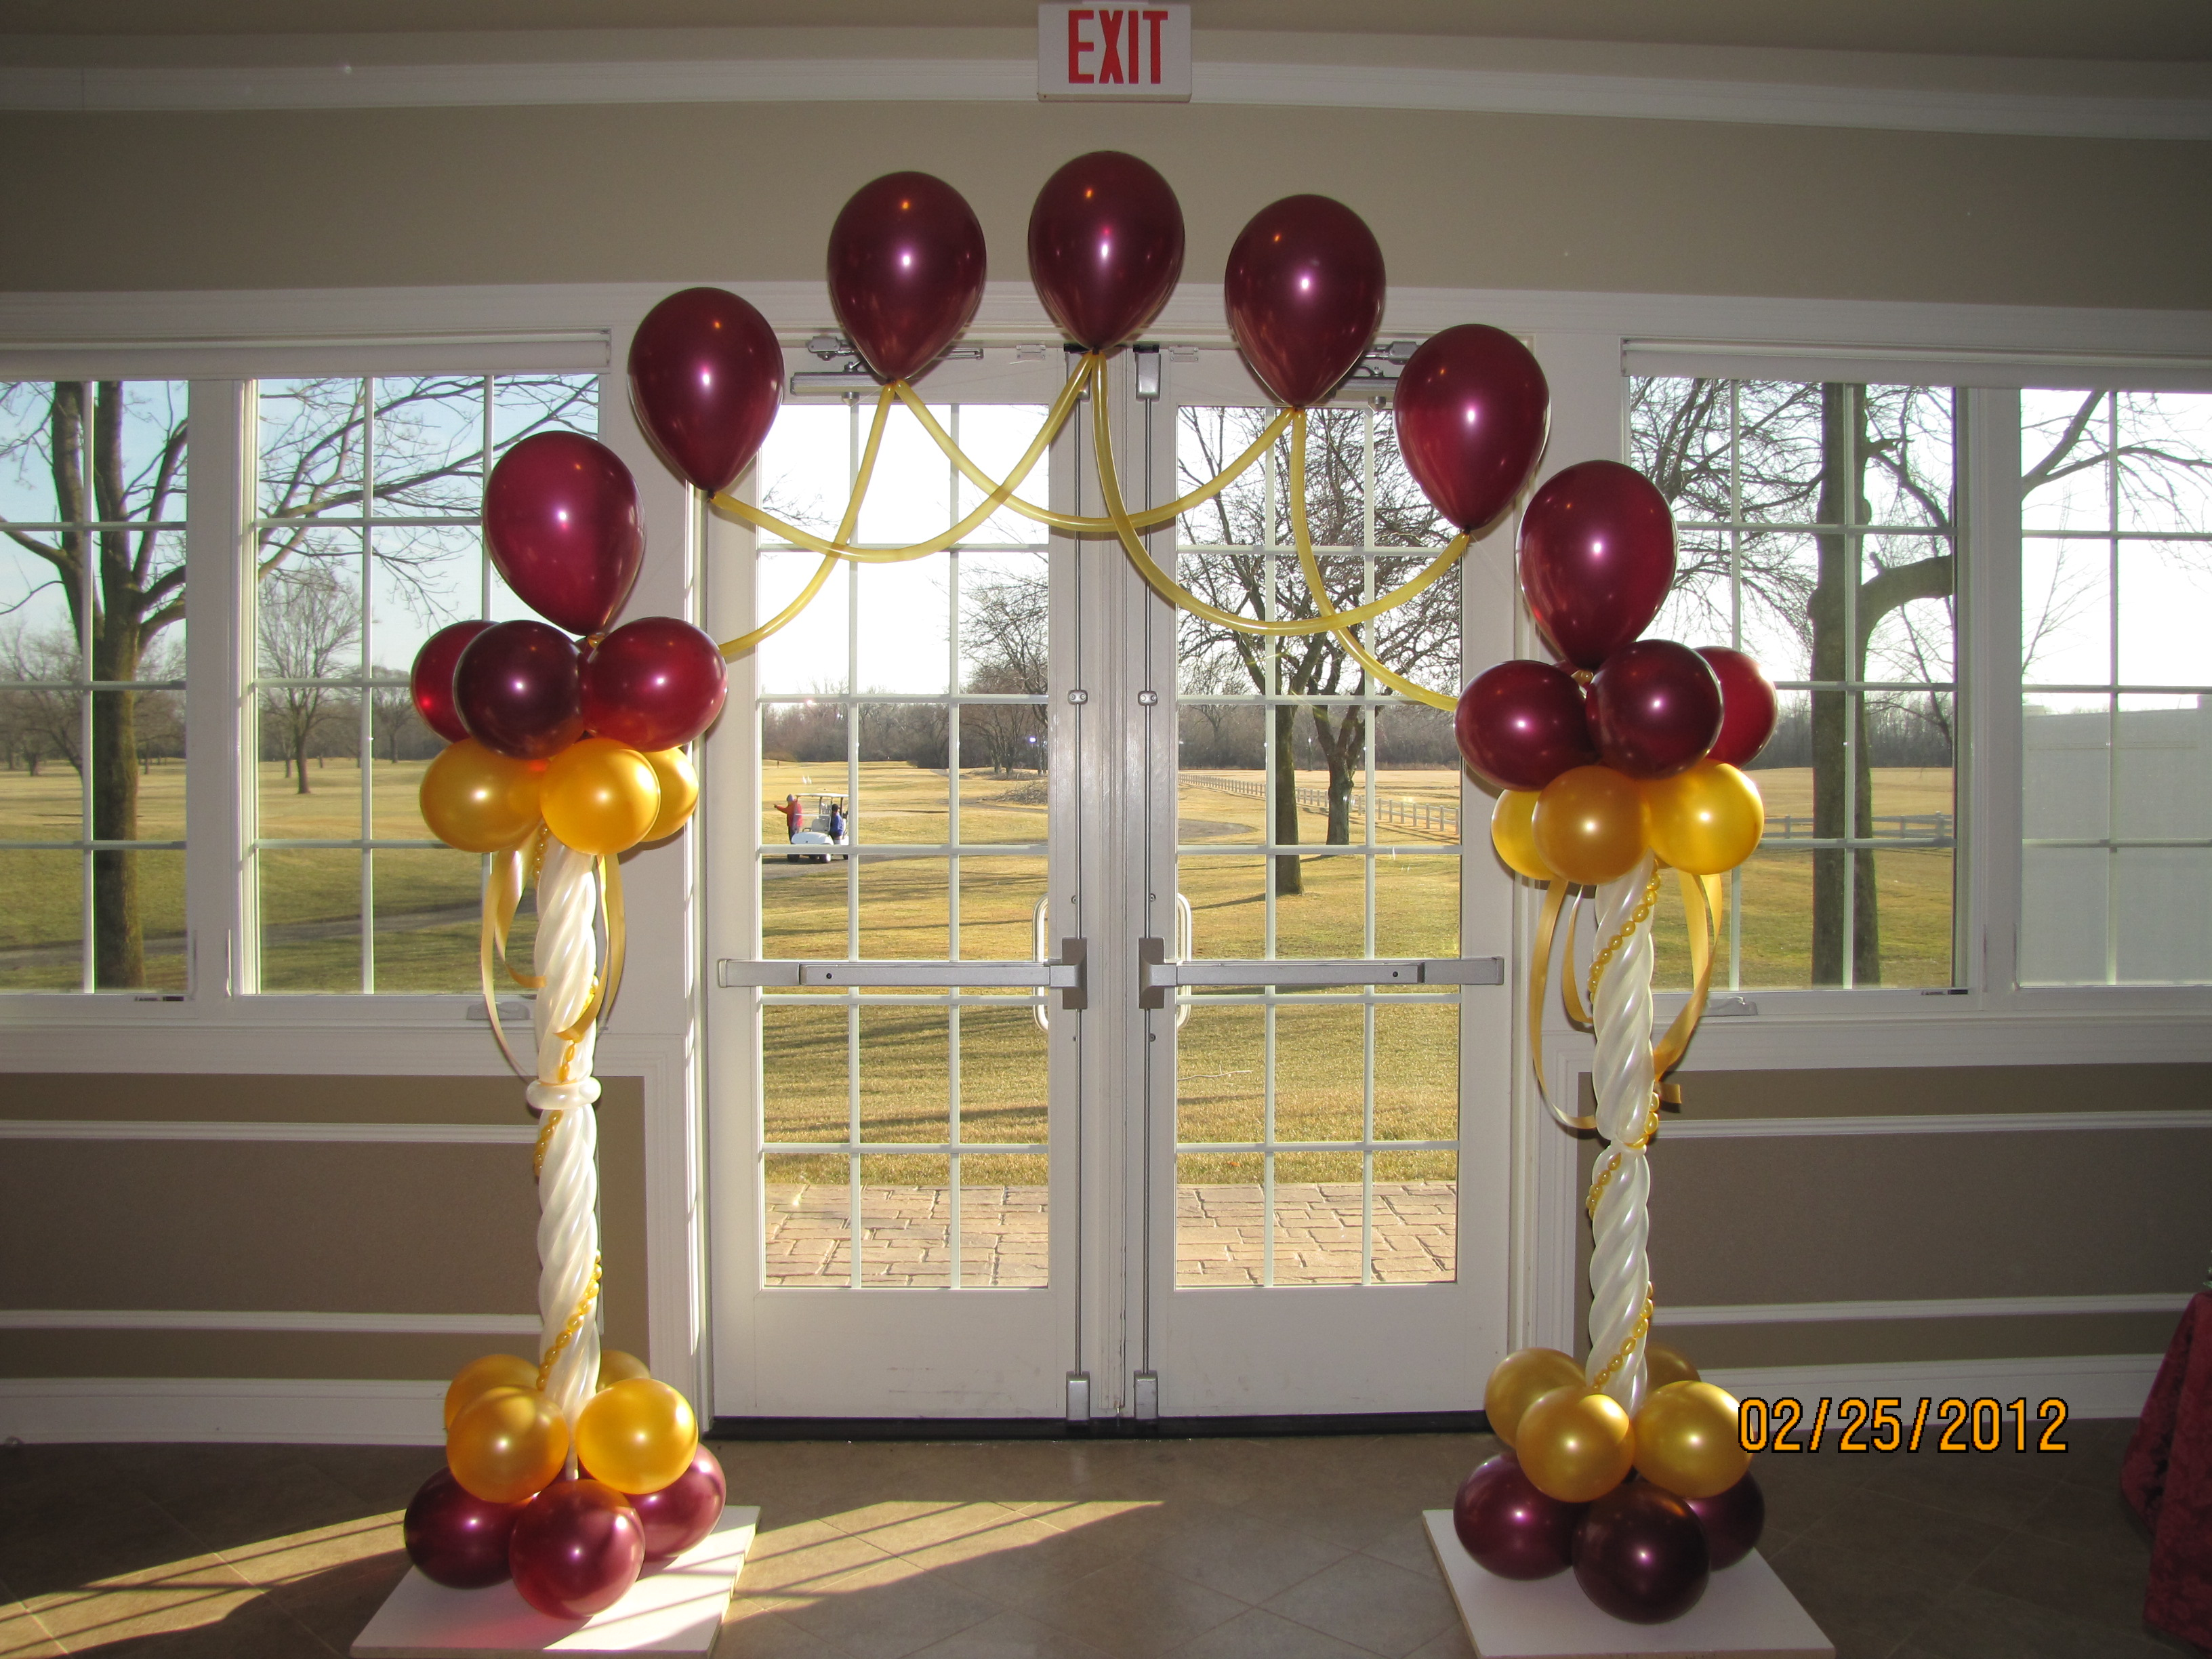 Wedding Balloon Decor. | amytheballoonlady